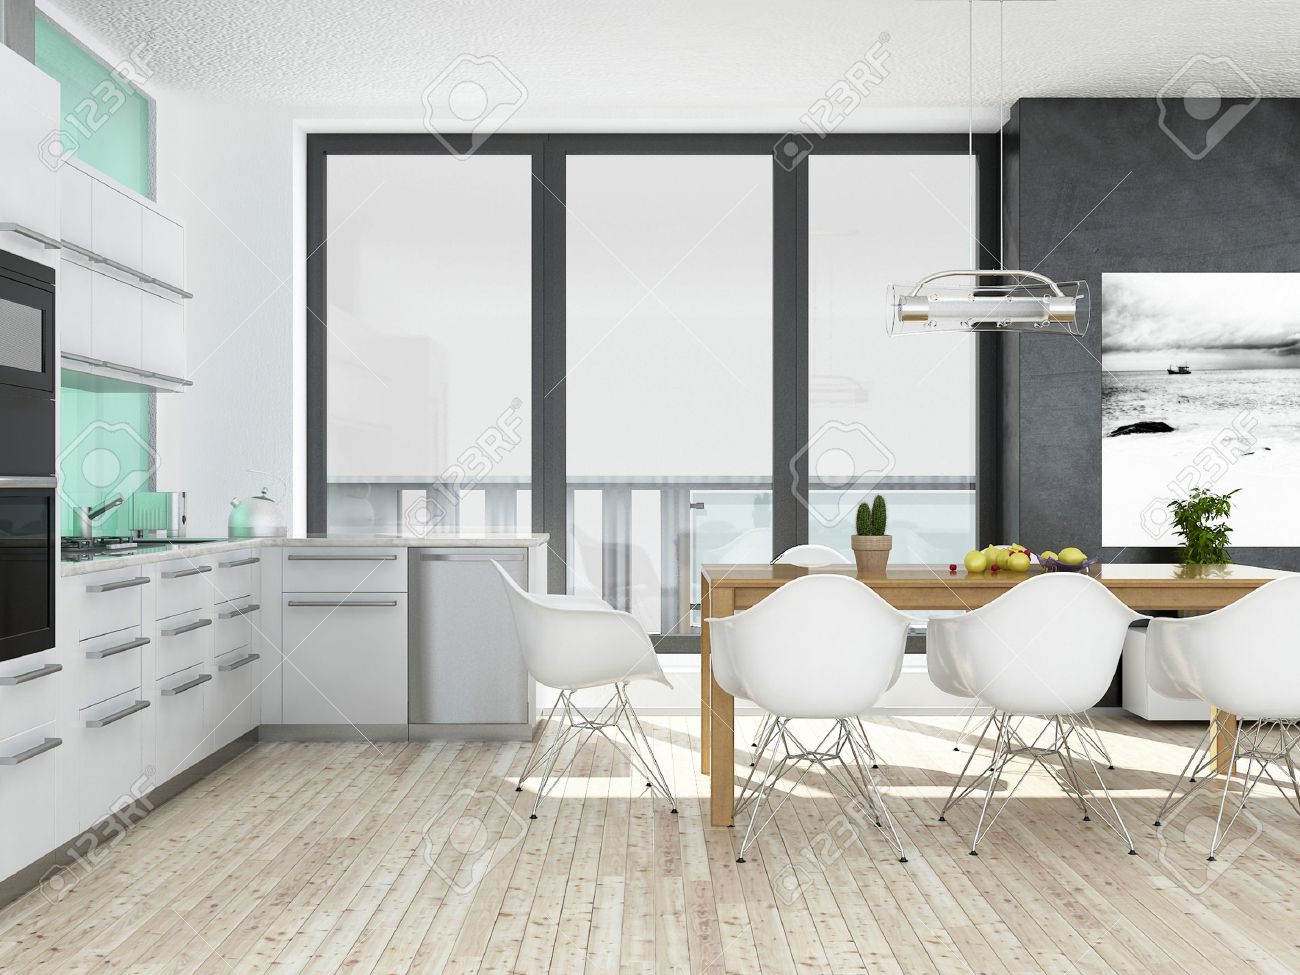 Modern White And Green Kitchen Interior With Wooden Floor Stock ...